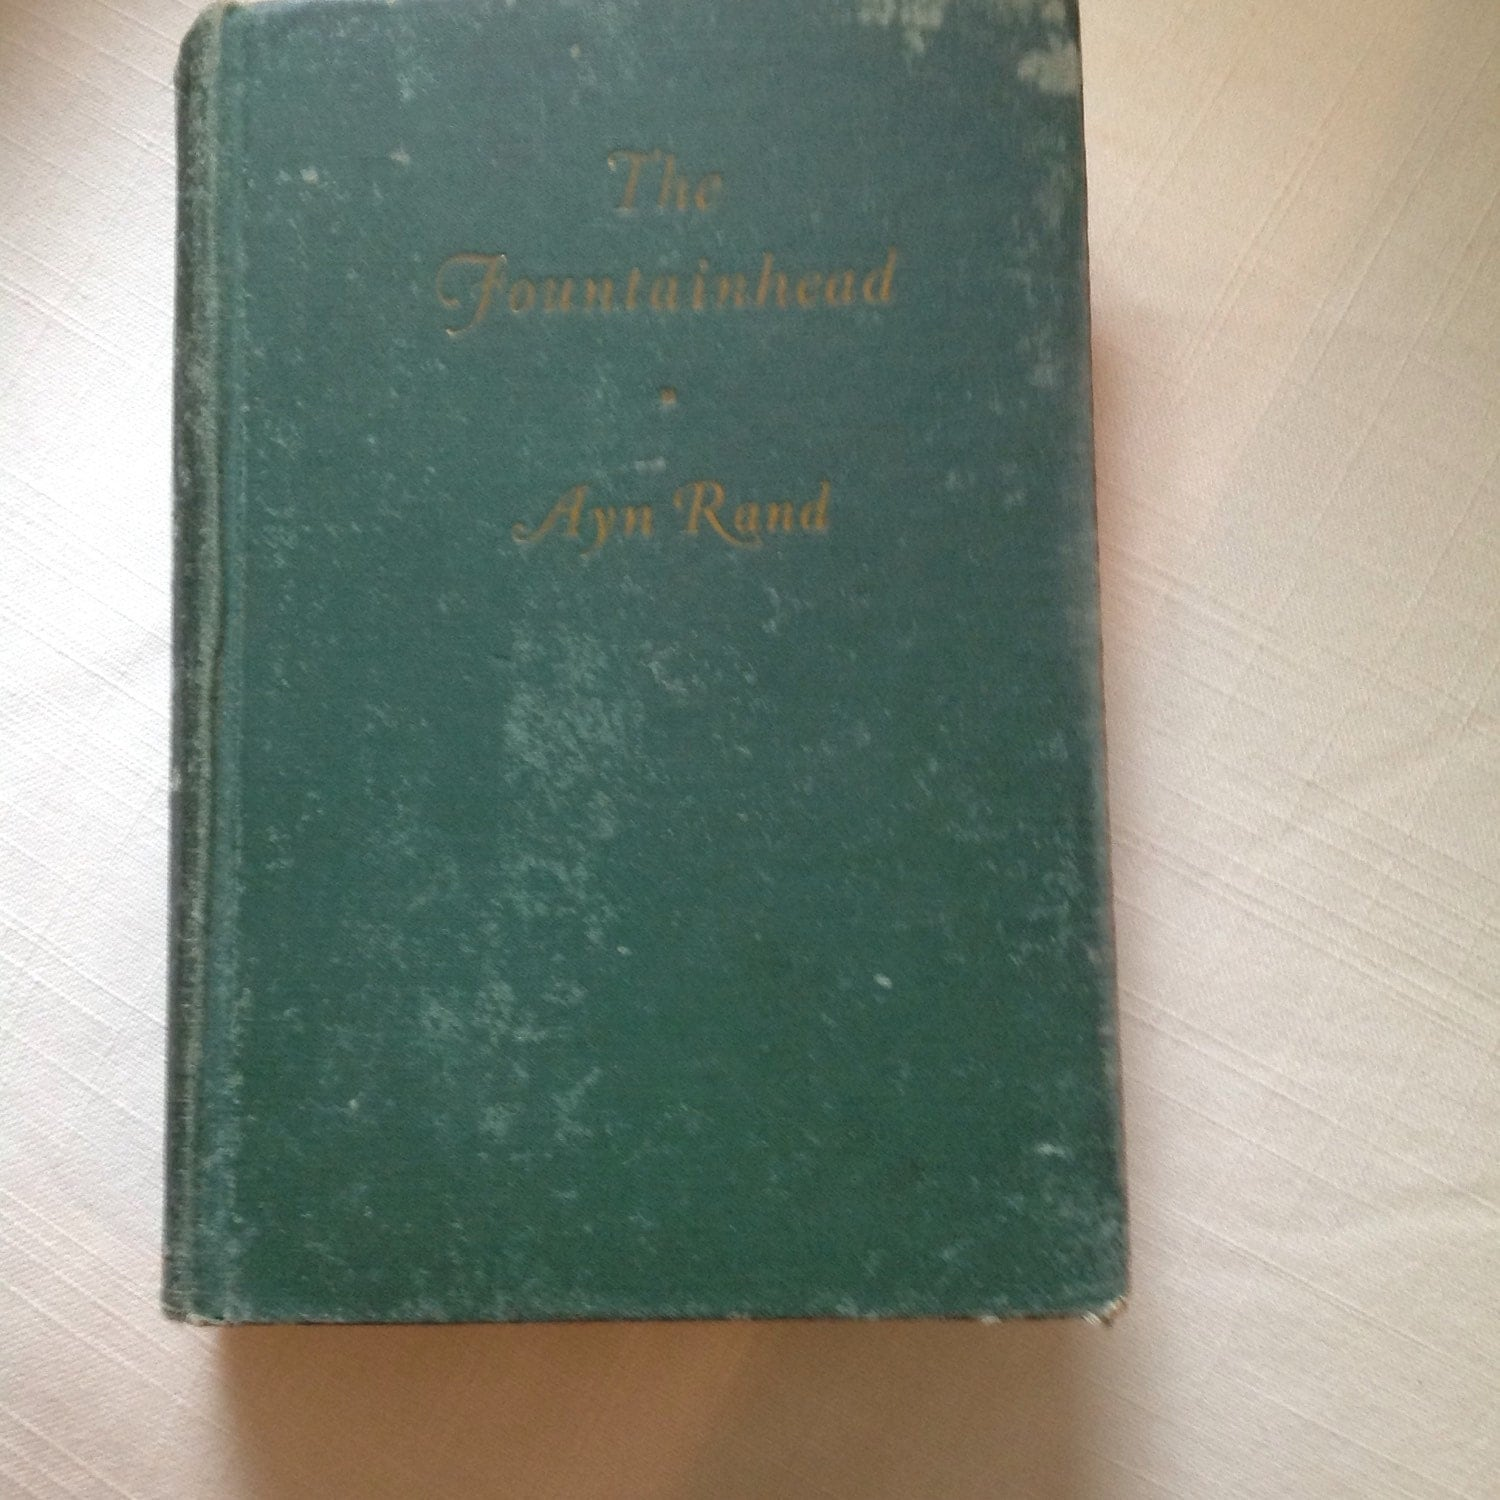 the fountainhead by ayn rand an Ayn rand is the author of anthem, the fountainhead, and atlas shrugged, and numerous non-fiction essays on philosophy, ethics, politics, art, and literature her philosophy, objectivism, has gained a worldwide audience of adherents and admirers.